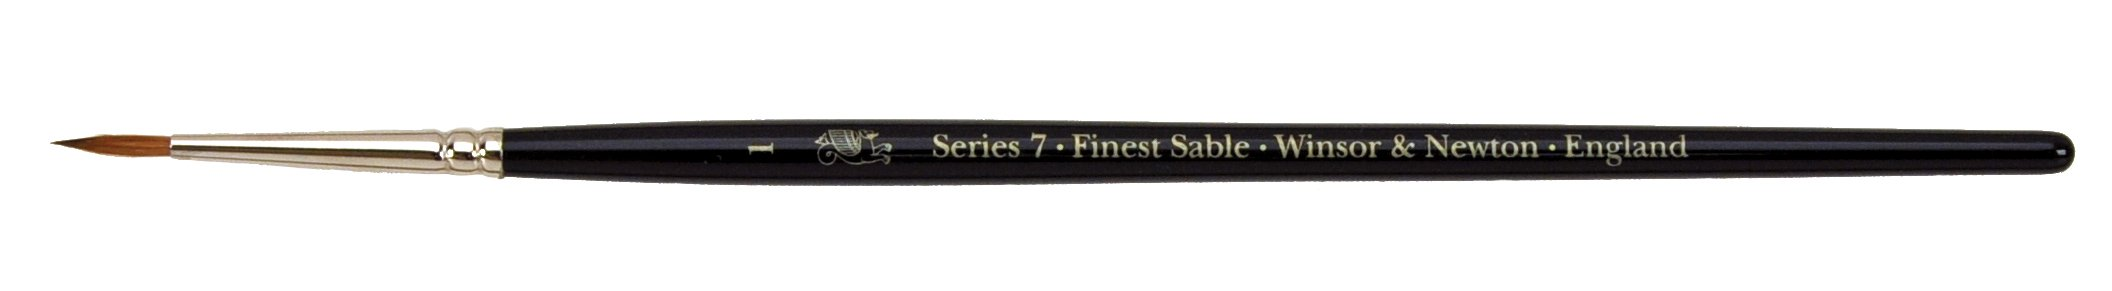 Winsor & Newton Series 7 Kolinsky Sable Watercolor Brush - Round #1 (5007001)